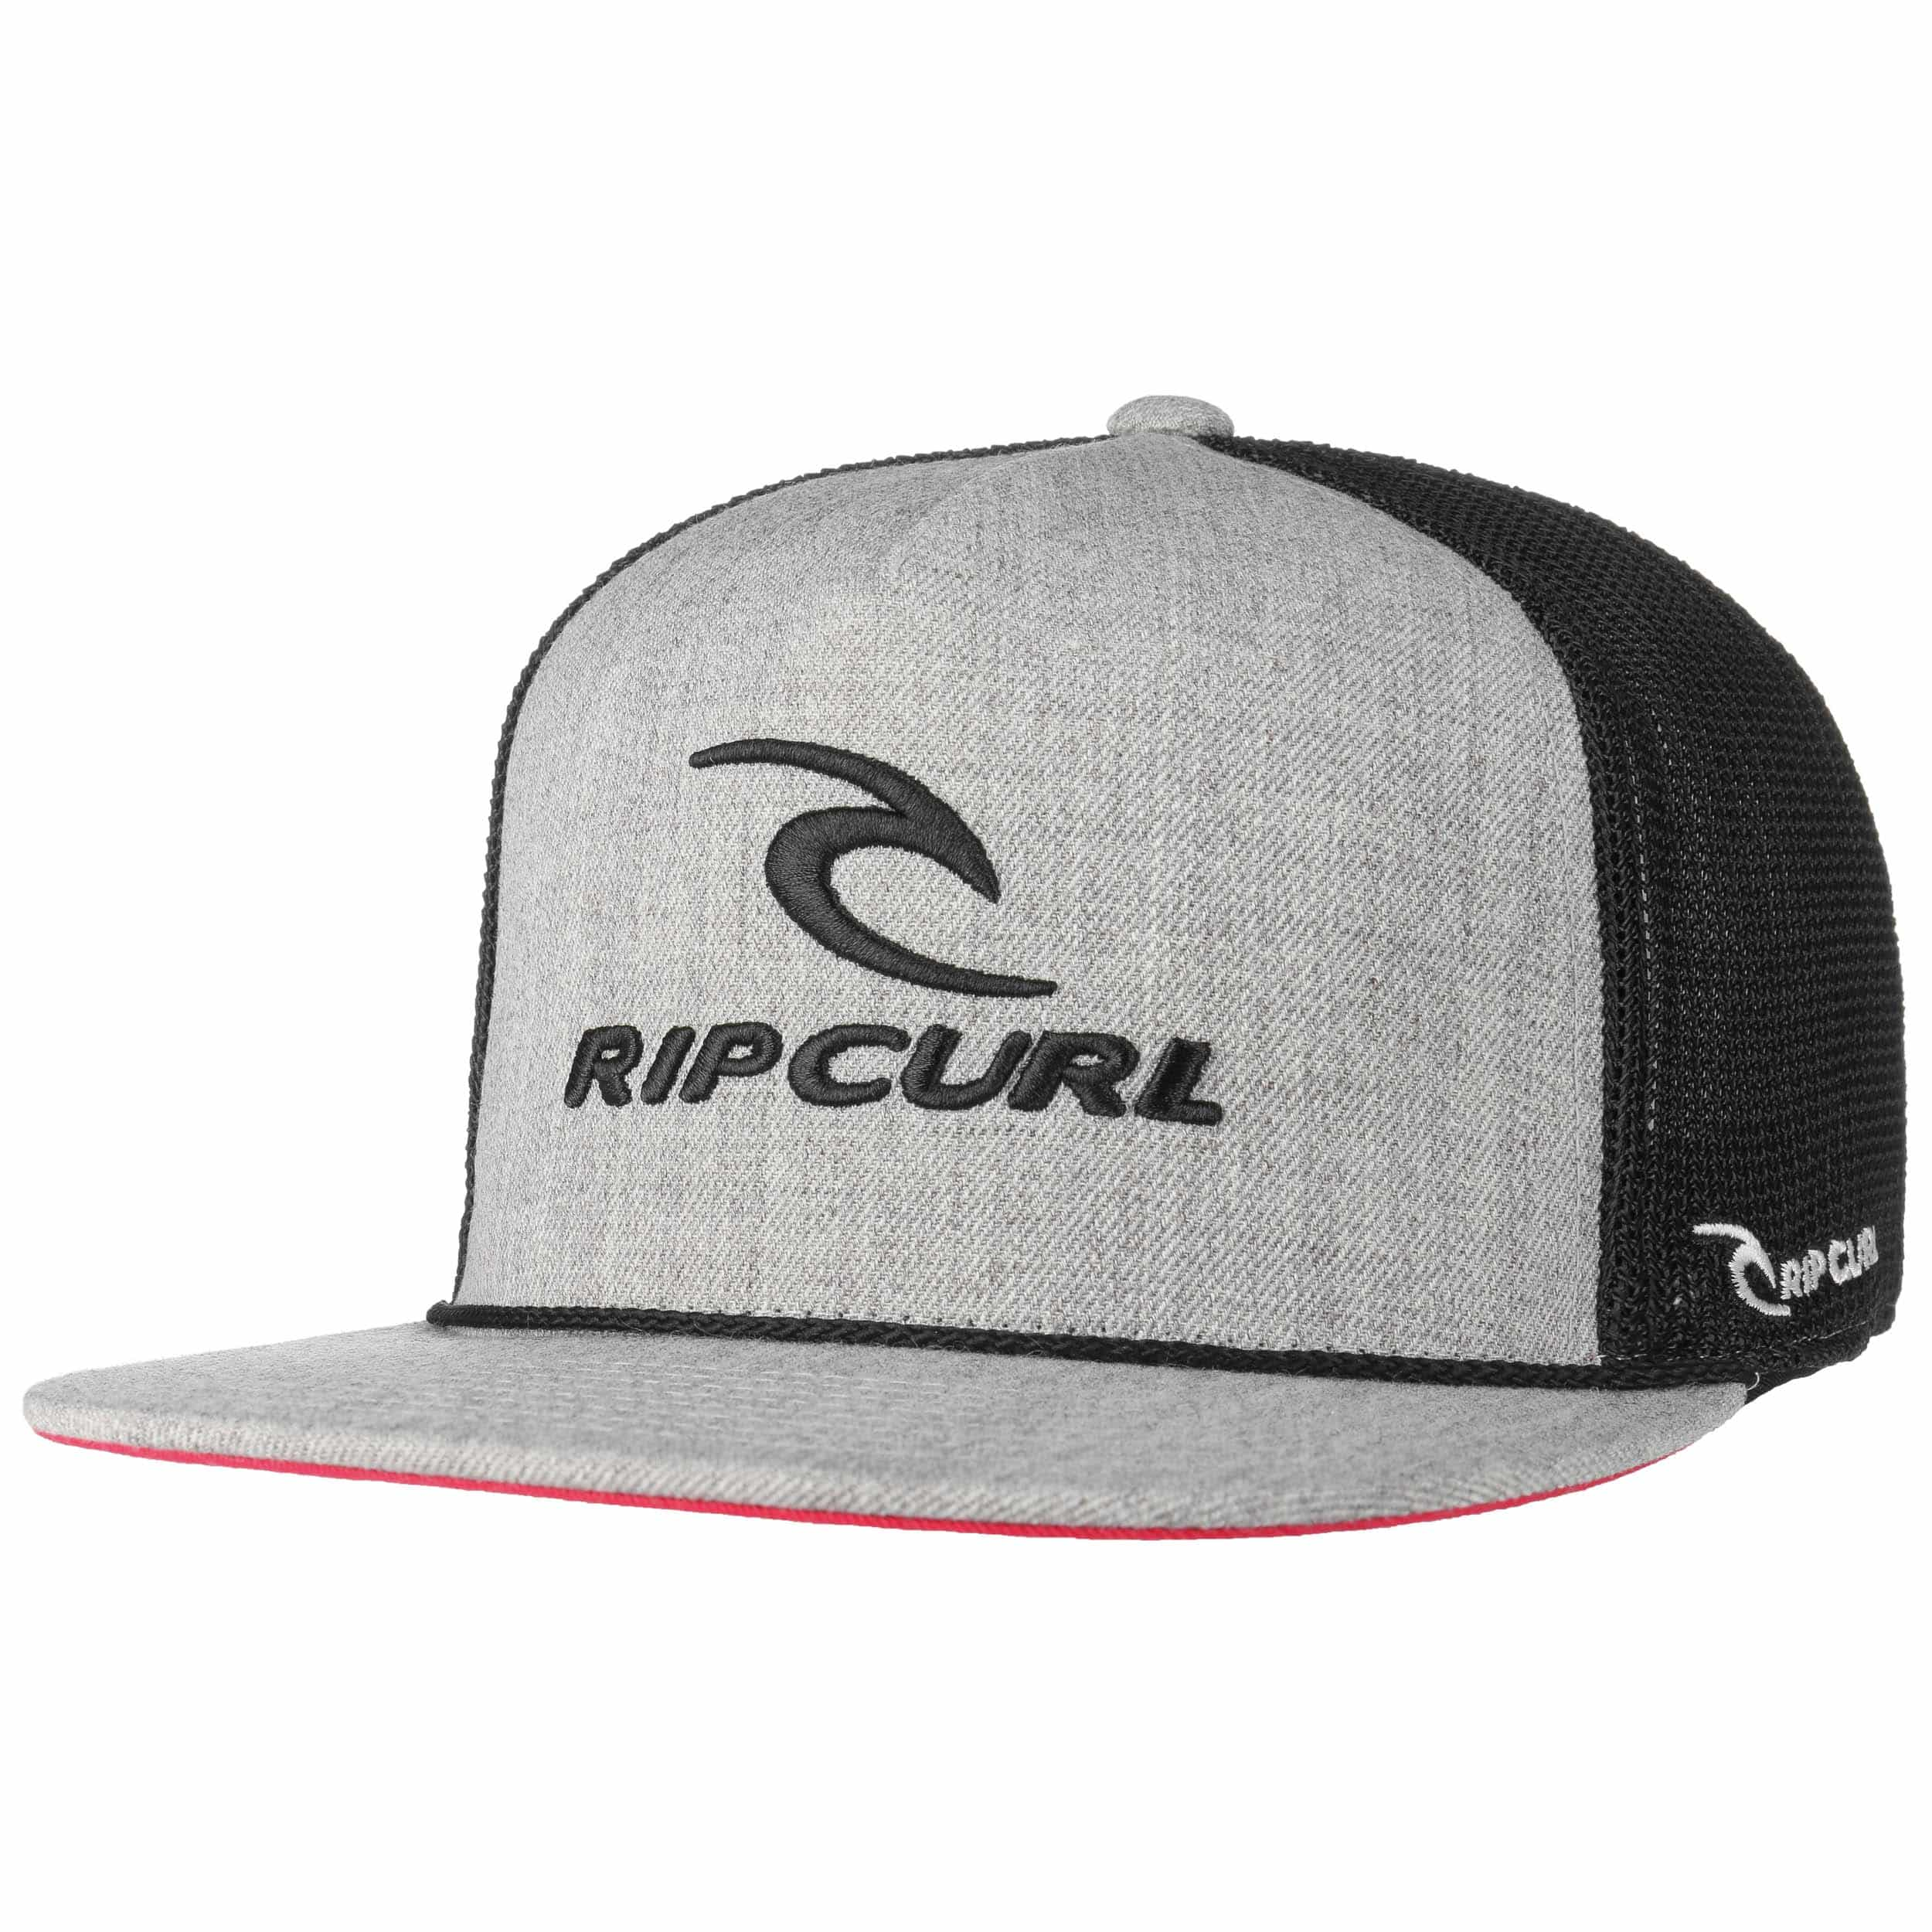 ... Rippy Team Trucker Pet by Rip Curl - licht grijs 7 ... 063d81ae6ee2